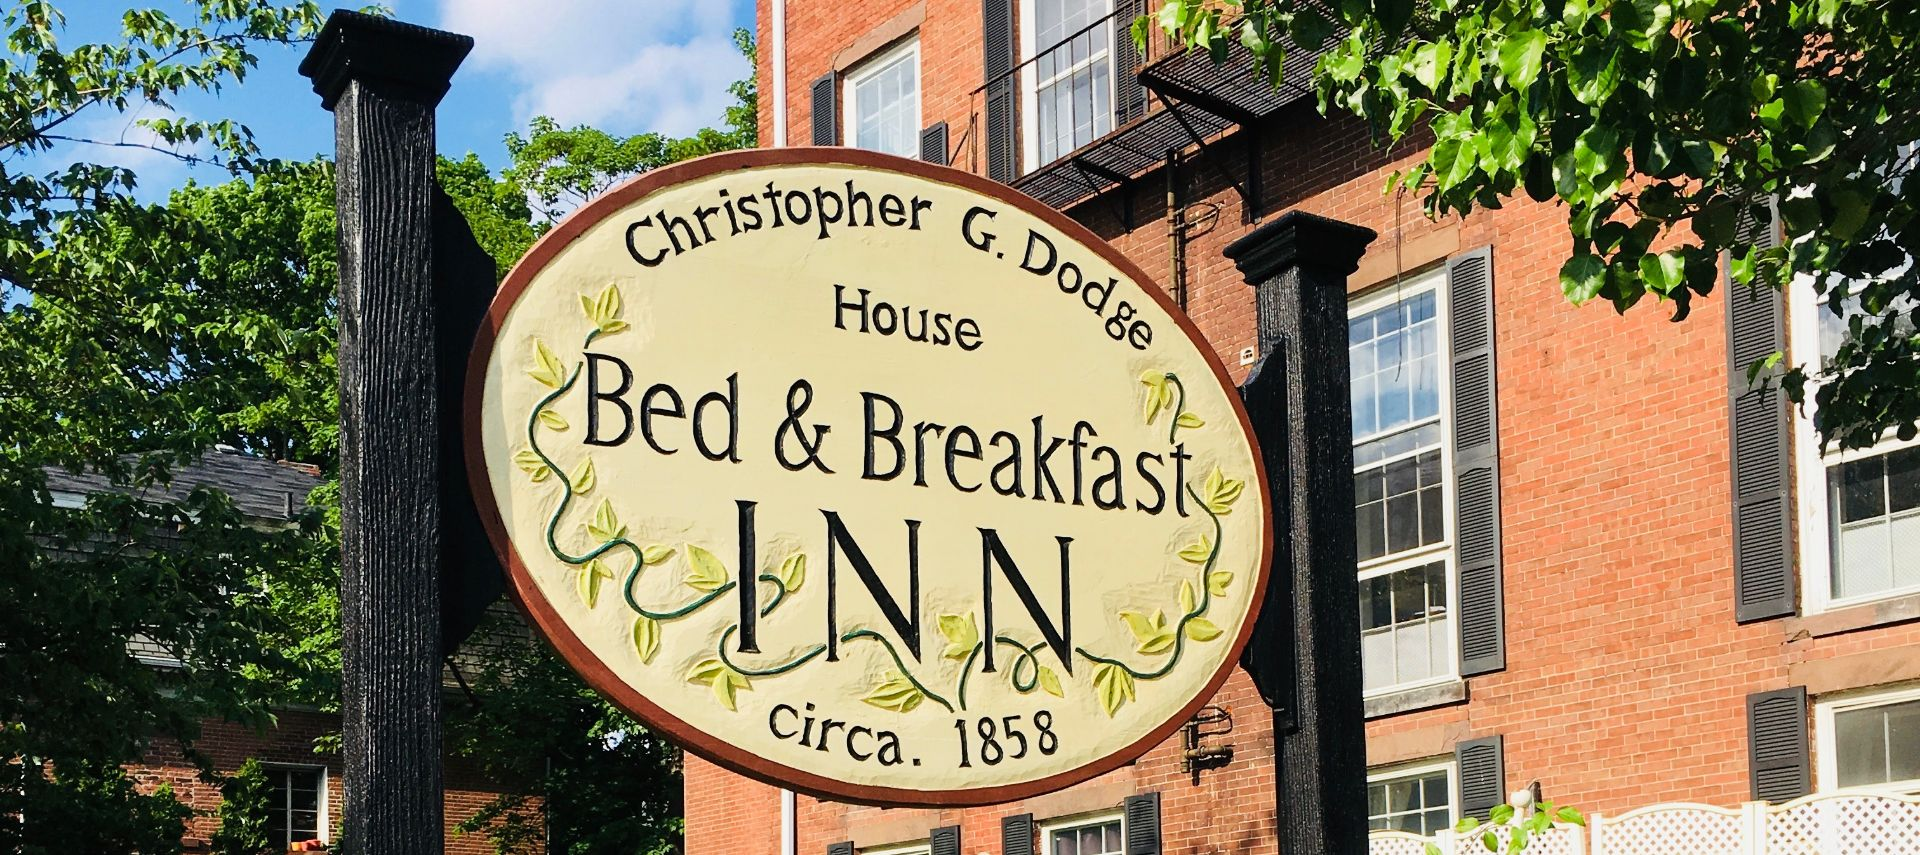 Hanging exterior sign for Christopher Dodge House